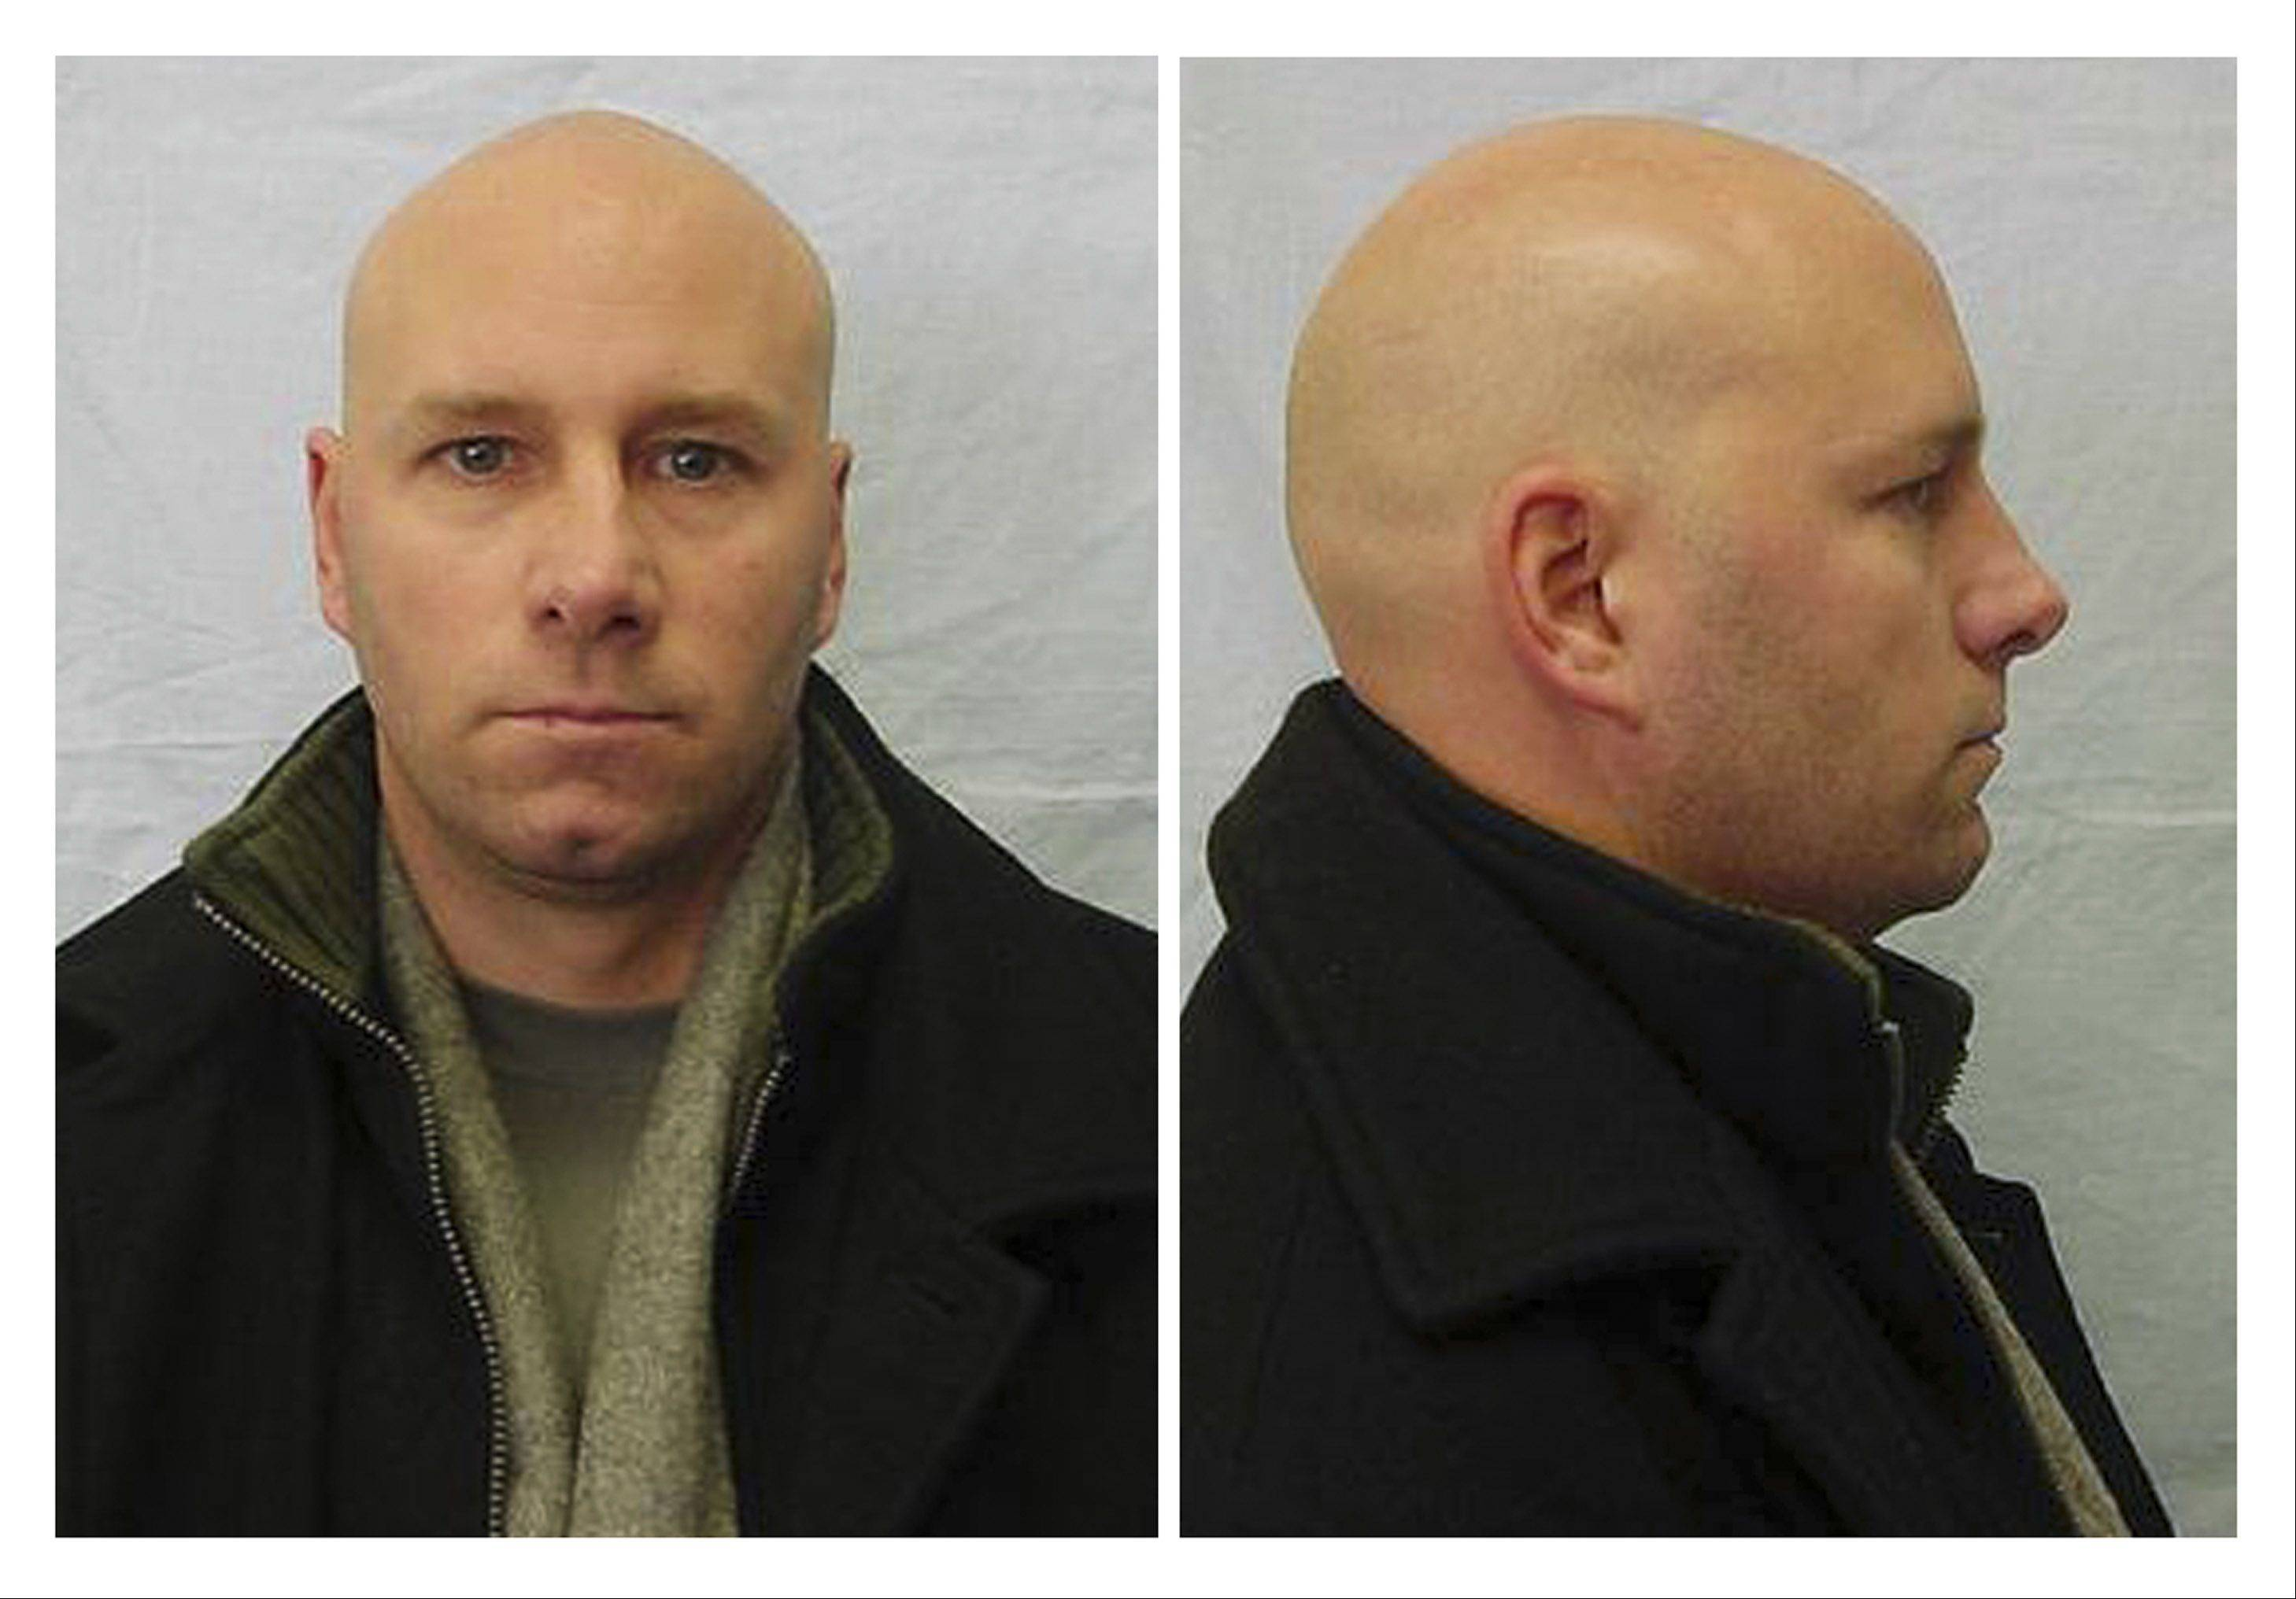 Familiar with the mug shot routine, lifelong criminal Robert Maday posed for these police photos after his most recent arrest. The Elk Grove Village native was convicted Wednesday on multiple charges stemming from his 2009 escape that dominated news coverage in the suburbs.